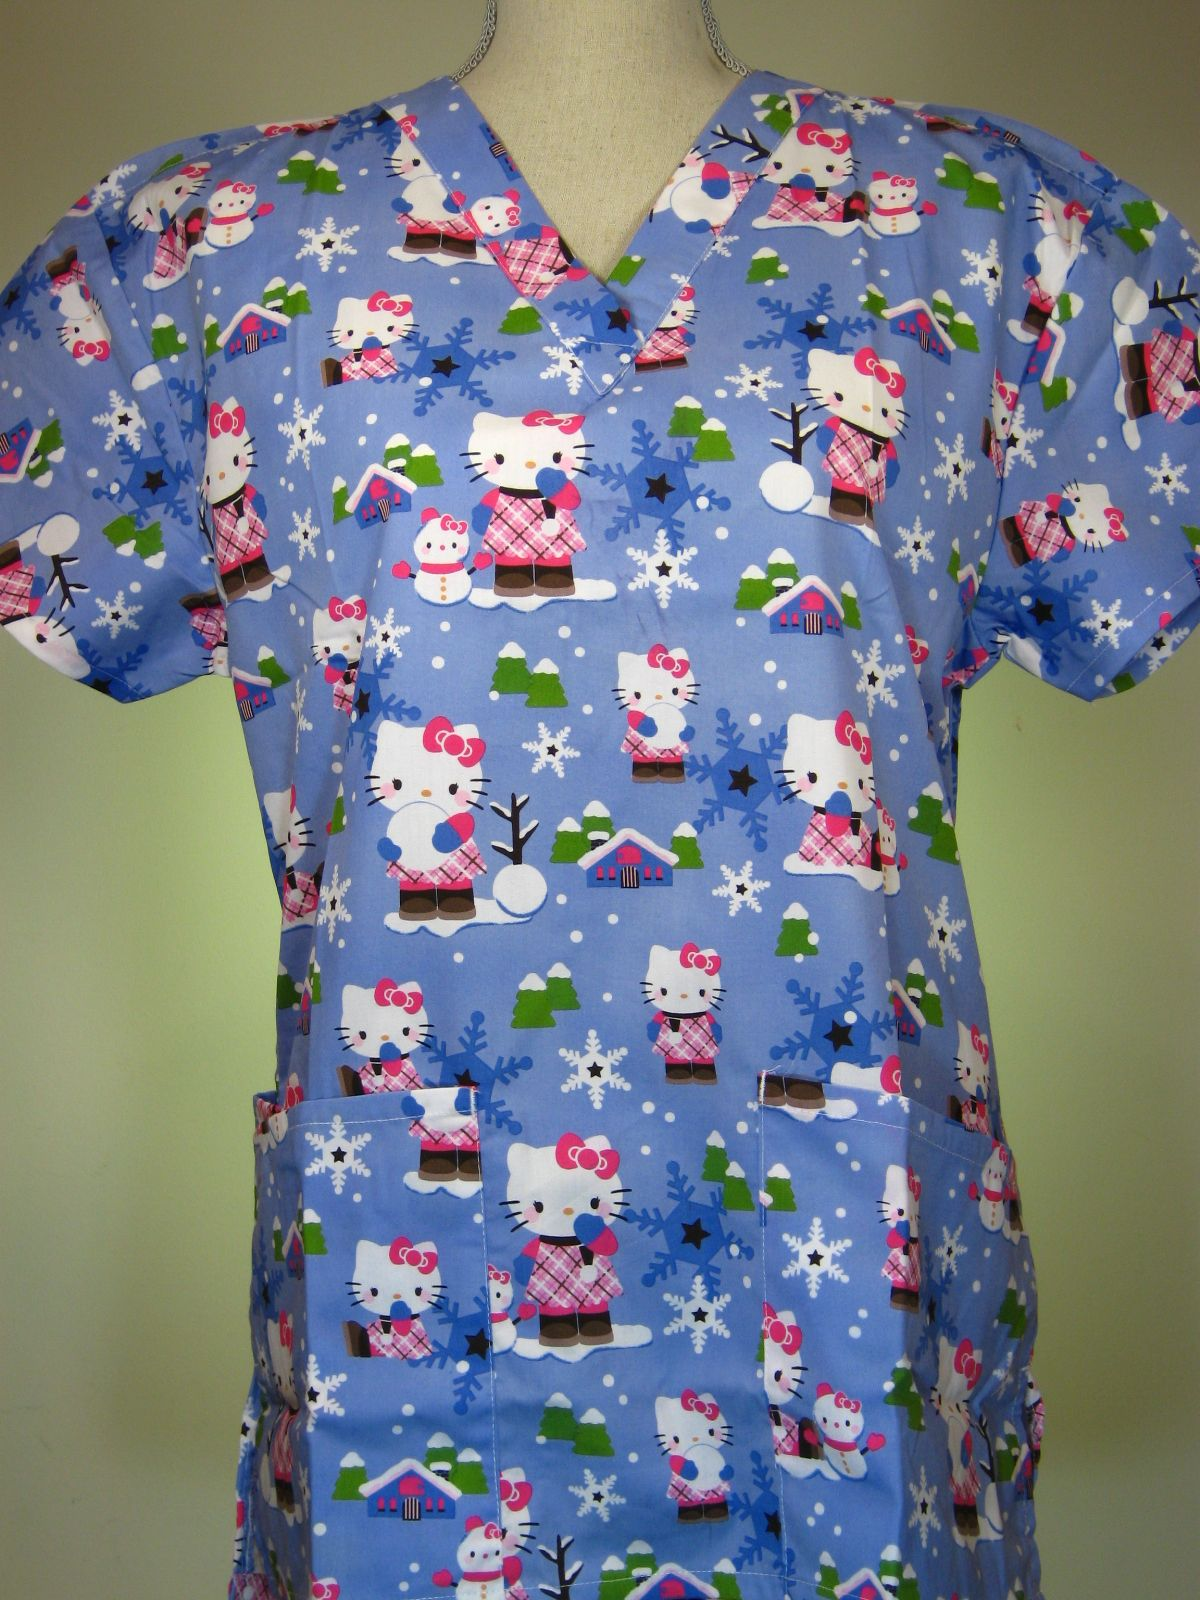 6f8d6a3fd8c #caringplus scrub top - Hello Kitty Winter Snowflakes Blue - CaringPlus  scrubs and uniforms - workwear clothing for nurses, caregivers and other  healthcare ...